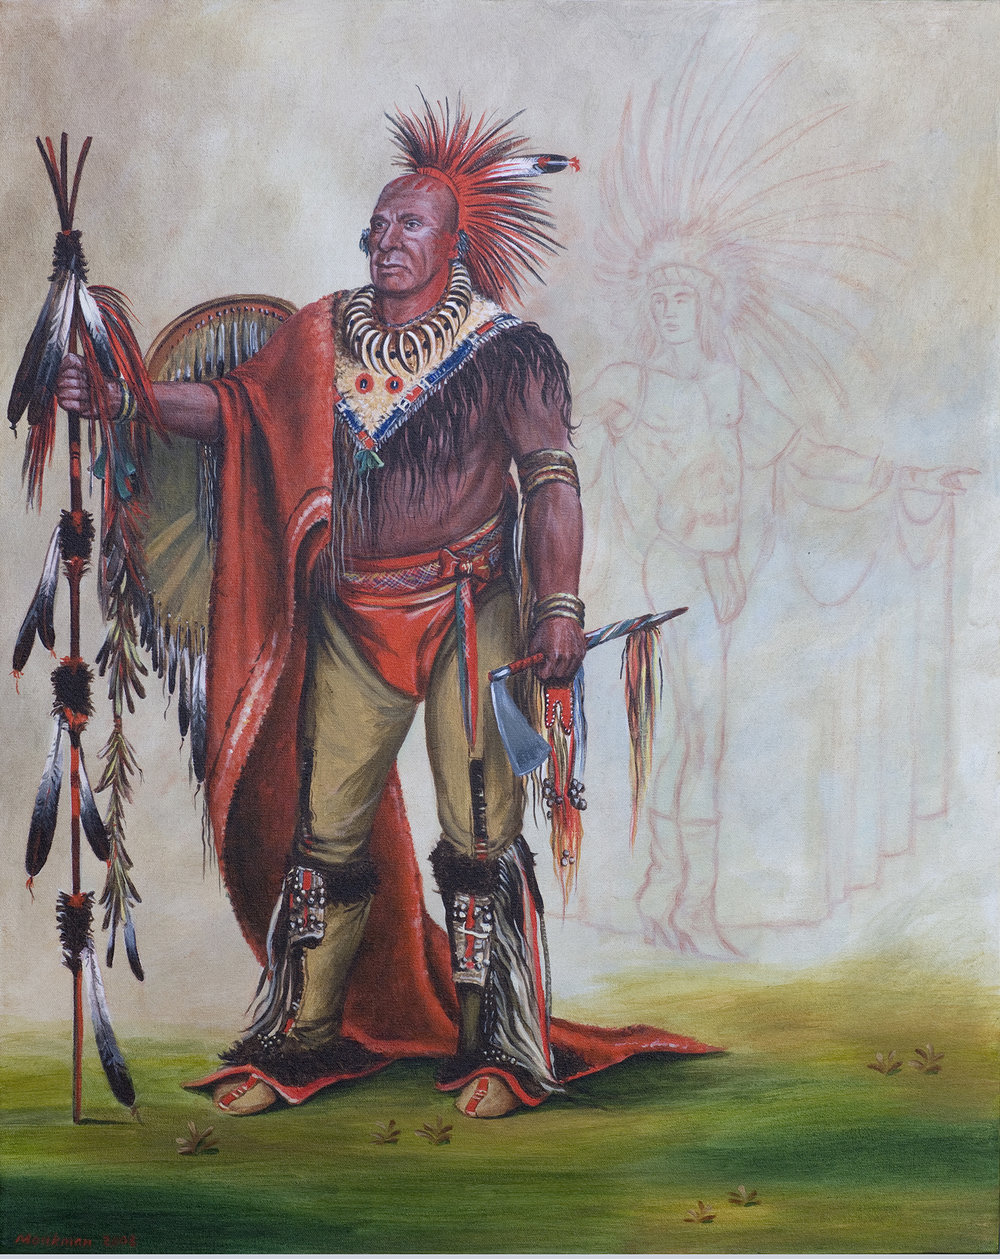 The Watchful Fox, Chief of the Tribe with Tinselled Buck No. 4,520